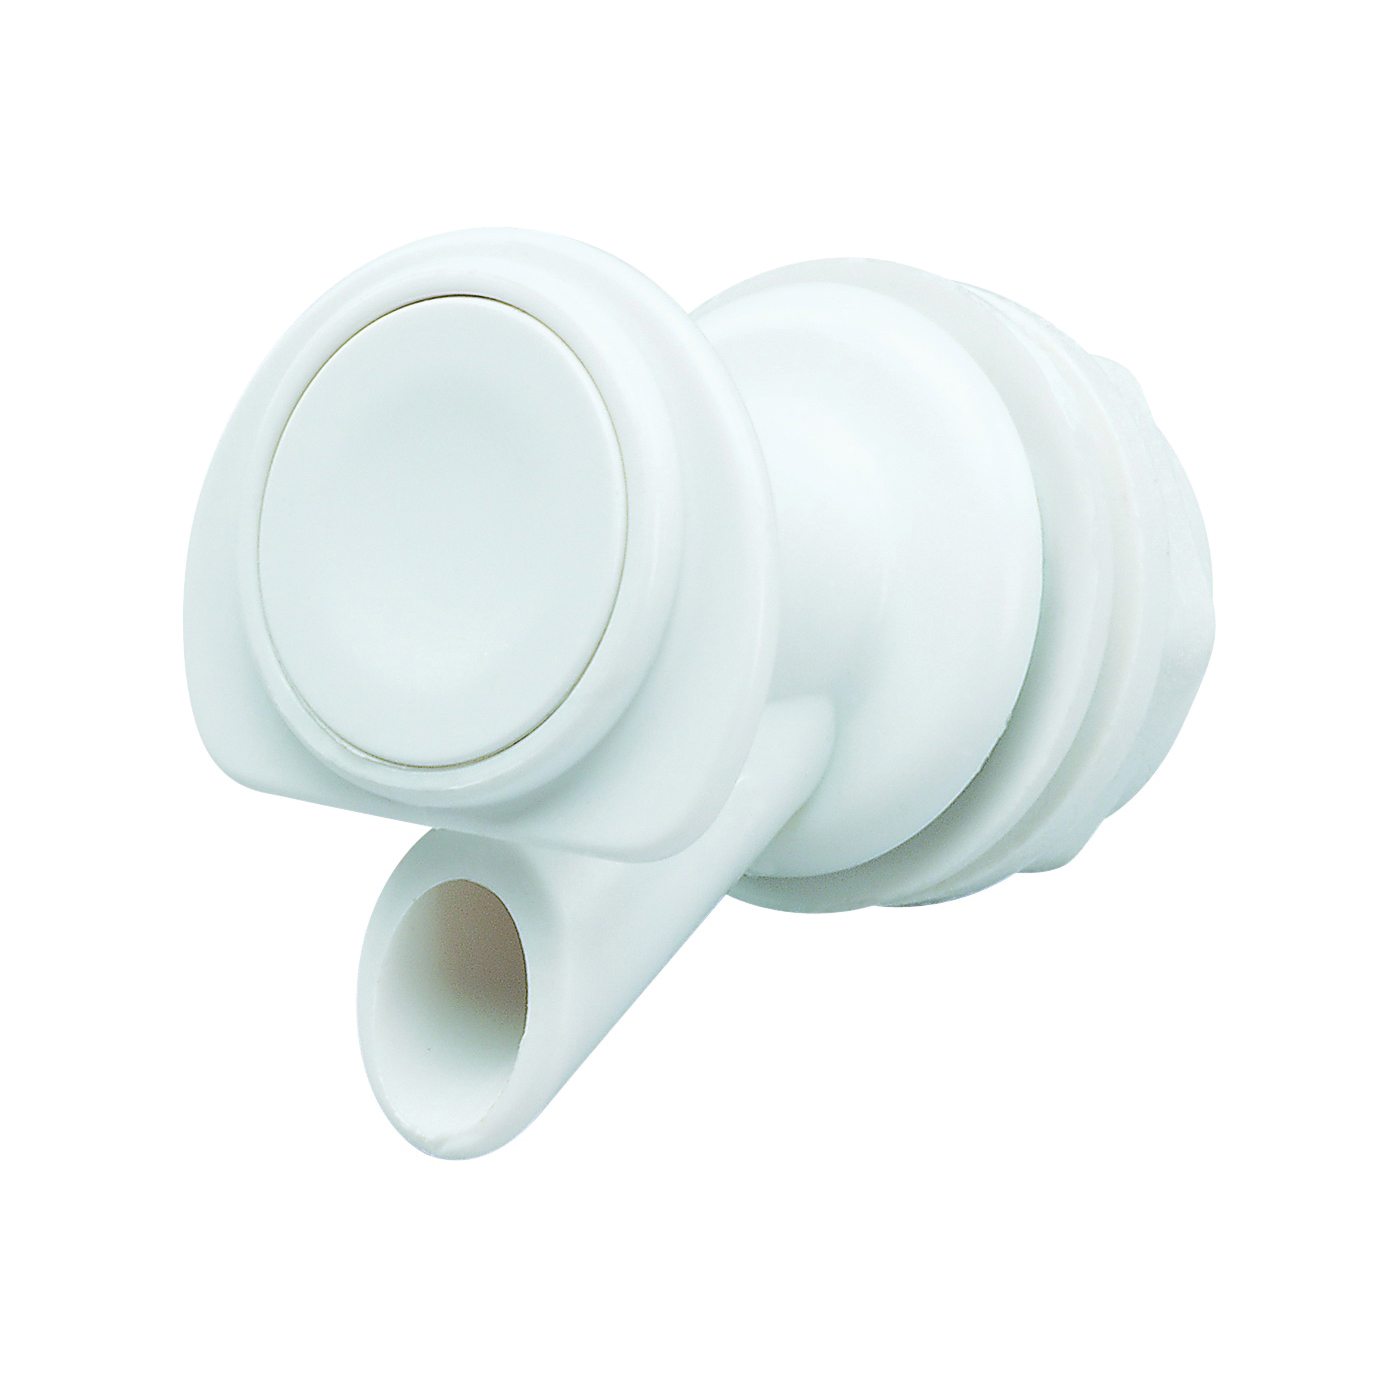 Picture of IGLOO 00024009 Water Cooler Spigot, Plastic, White, For: 1, 2, 3, 5 and 10 gal Plastic Coolers